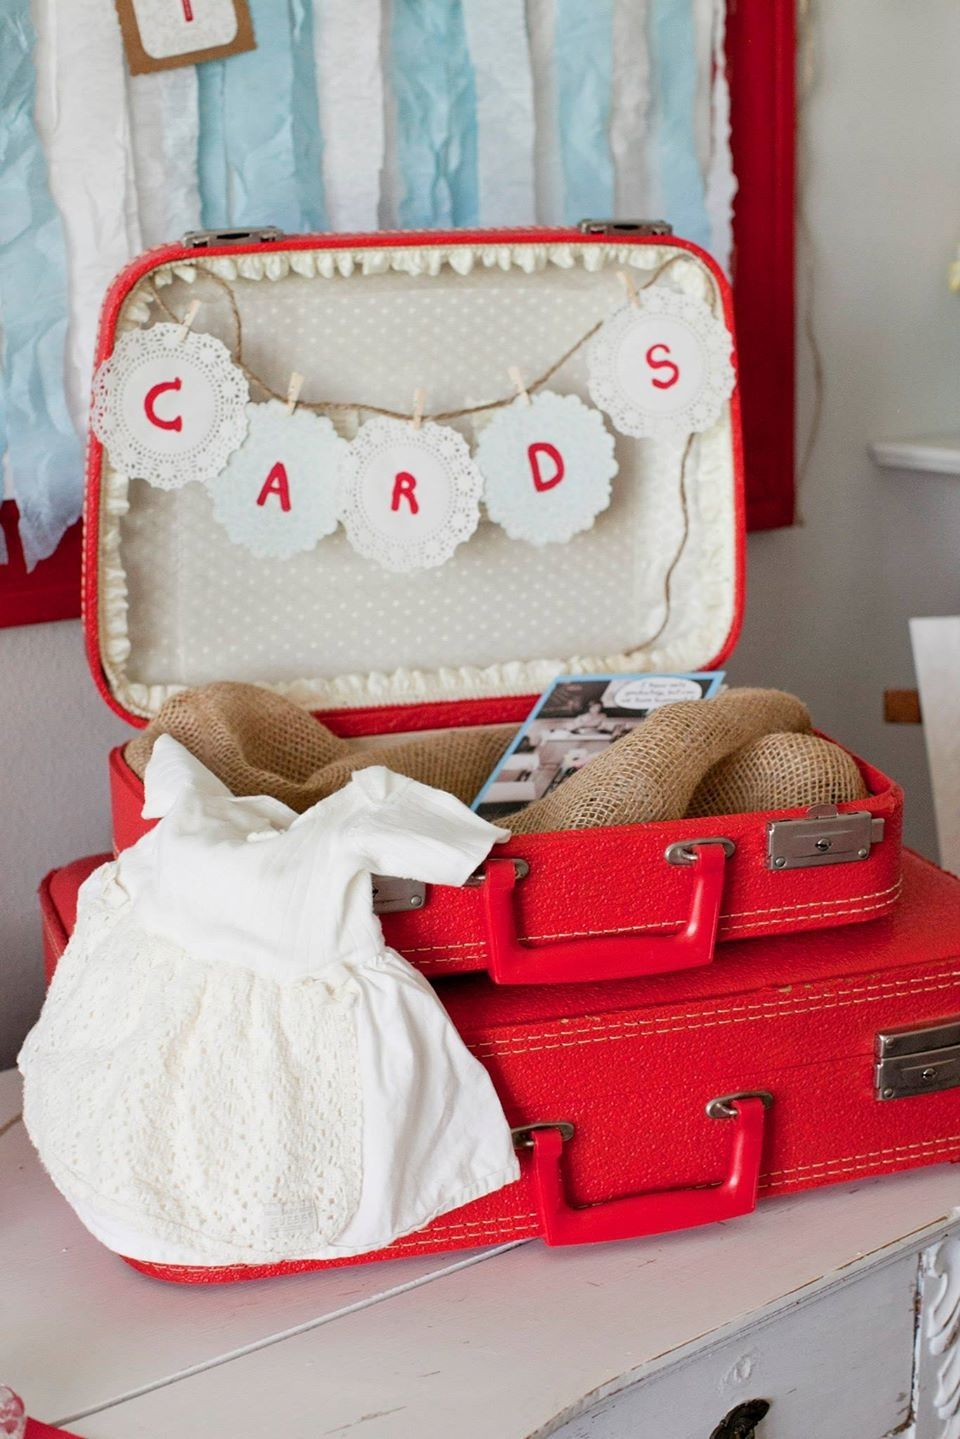 Vintage suitcase for graduation cards and graduate's baby dress.